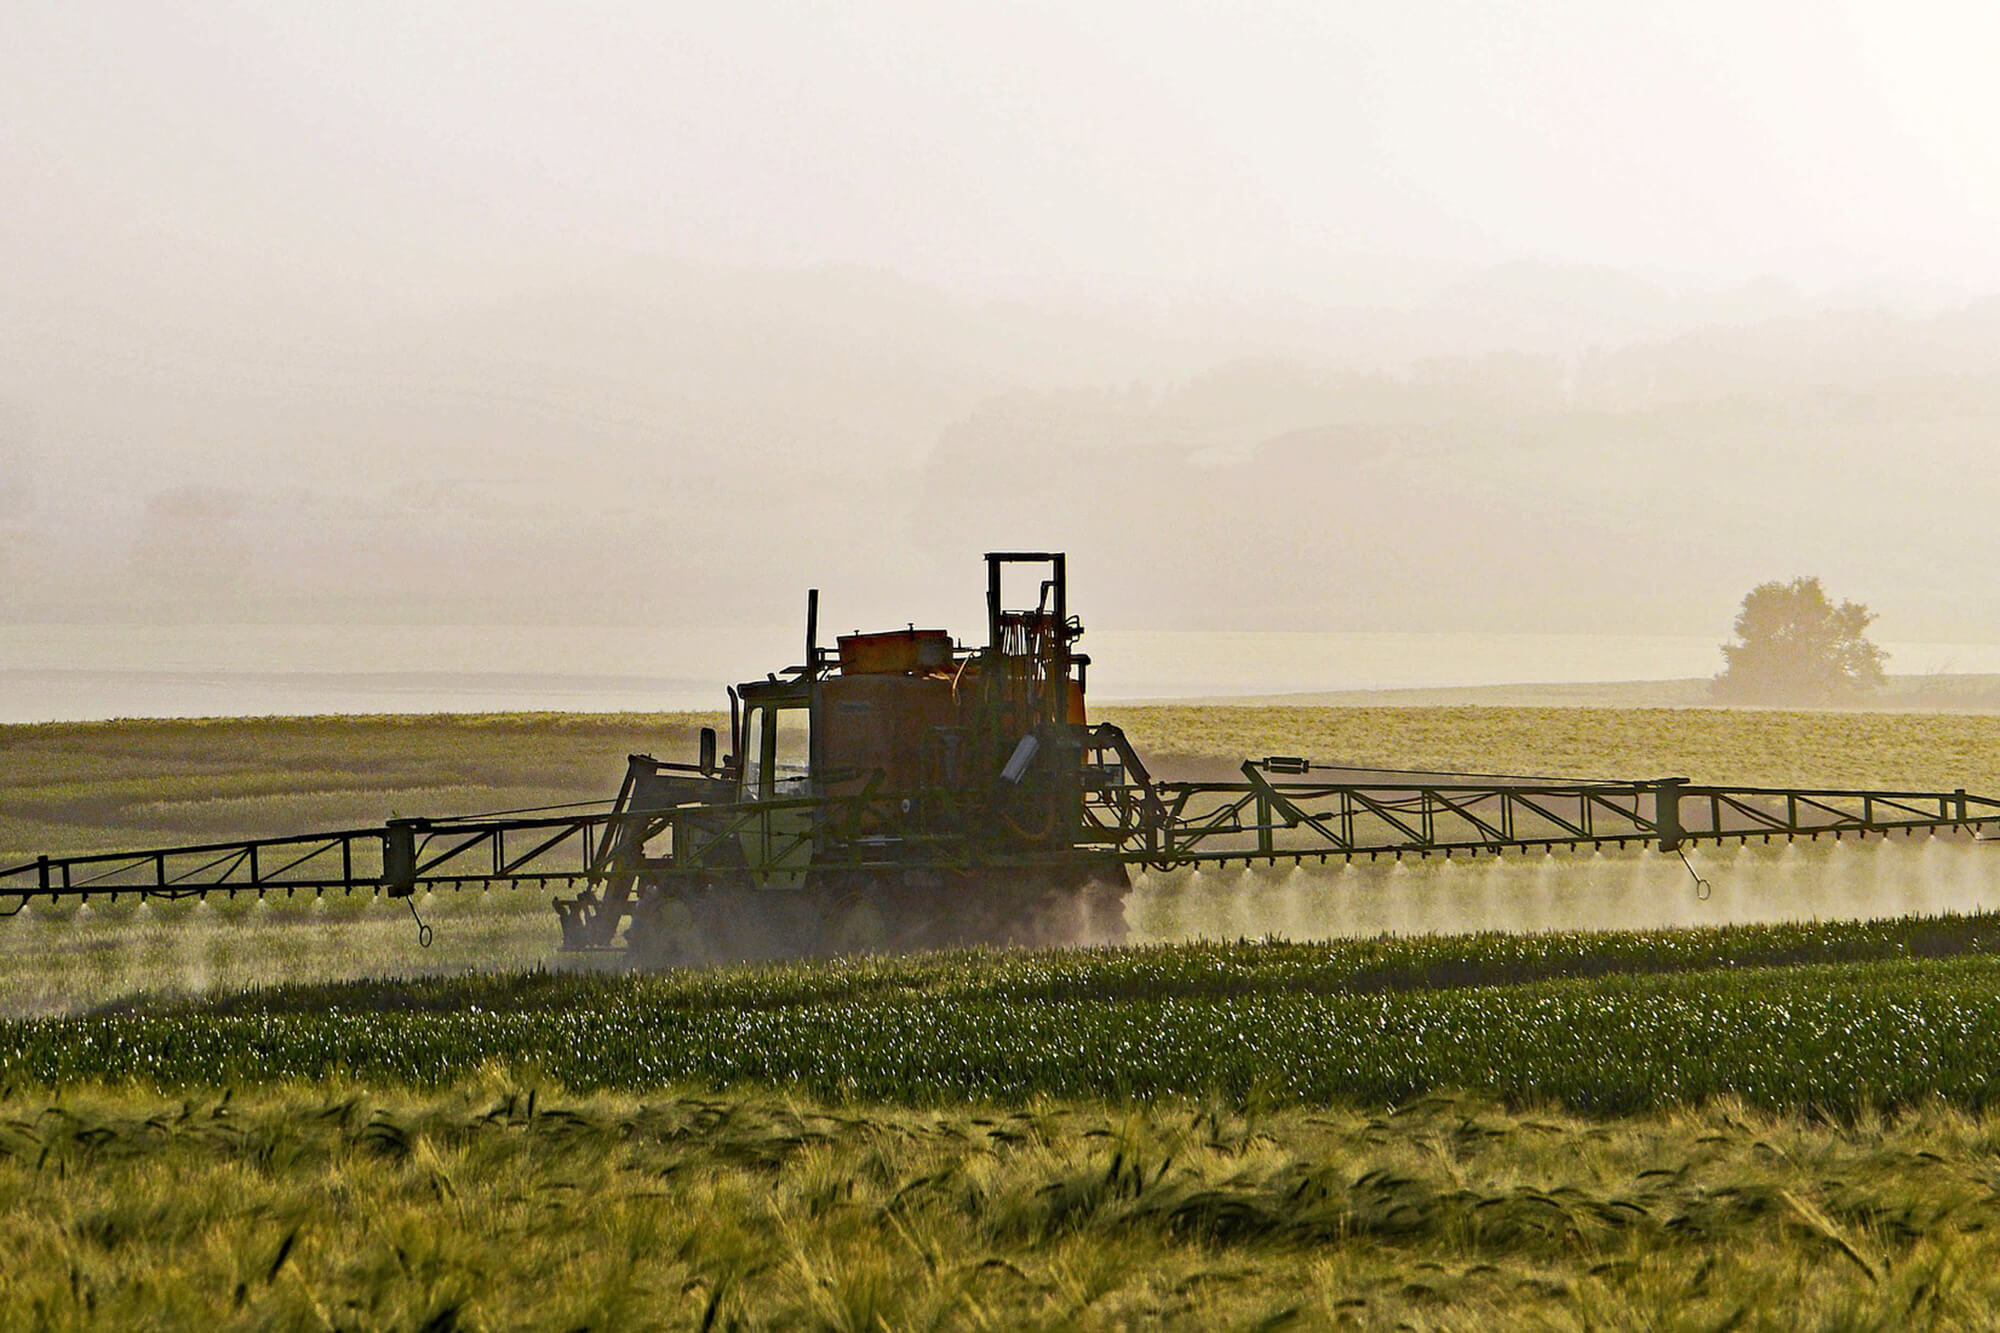 Farmer in tractor spraying pesticides on crops